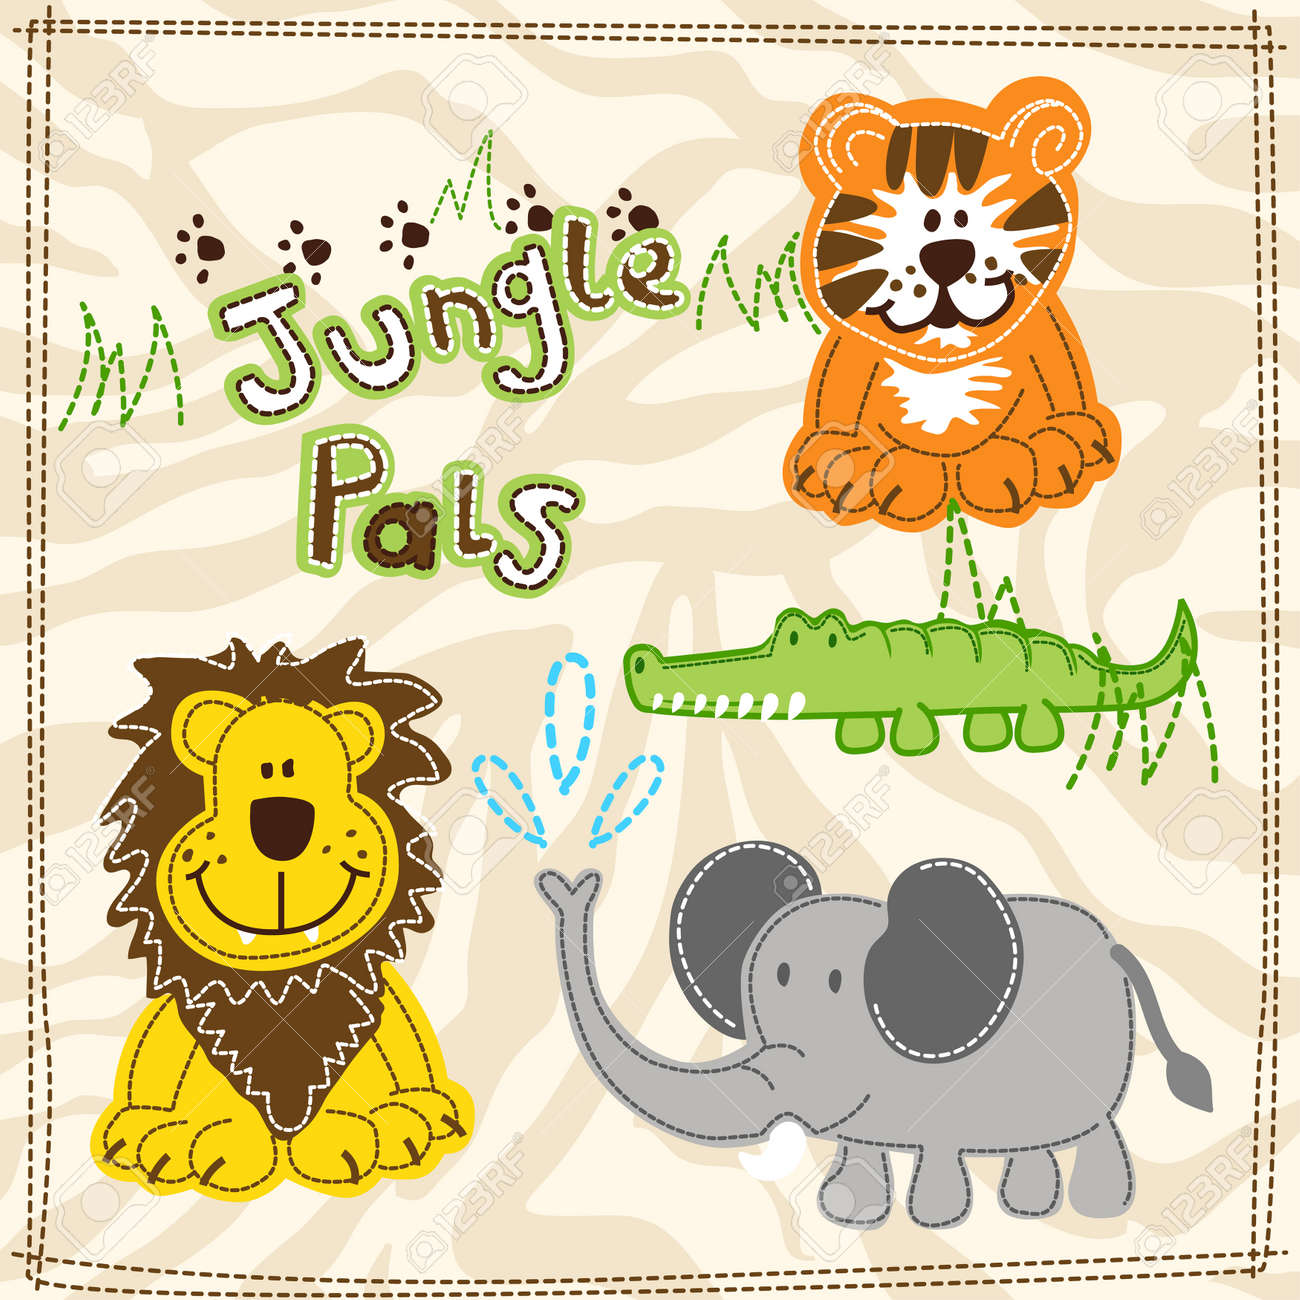 Cute African Wild Animals Embroidery Illustrations Royalty Free